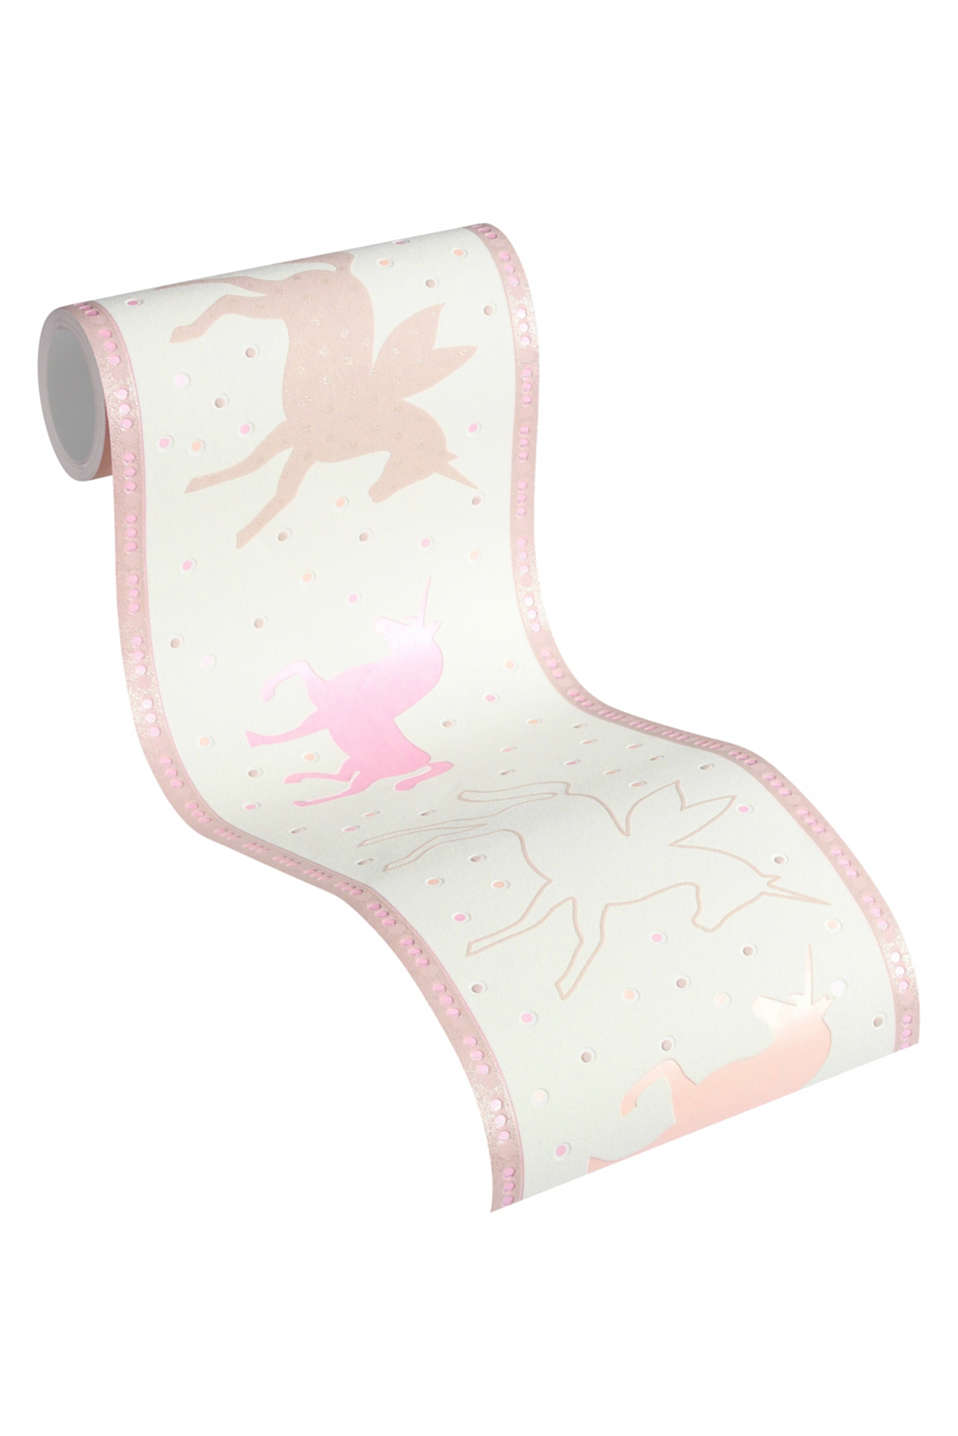 UNICORNS collection - adorable unicorn motifs are perfect for a girls room.